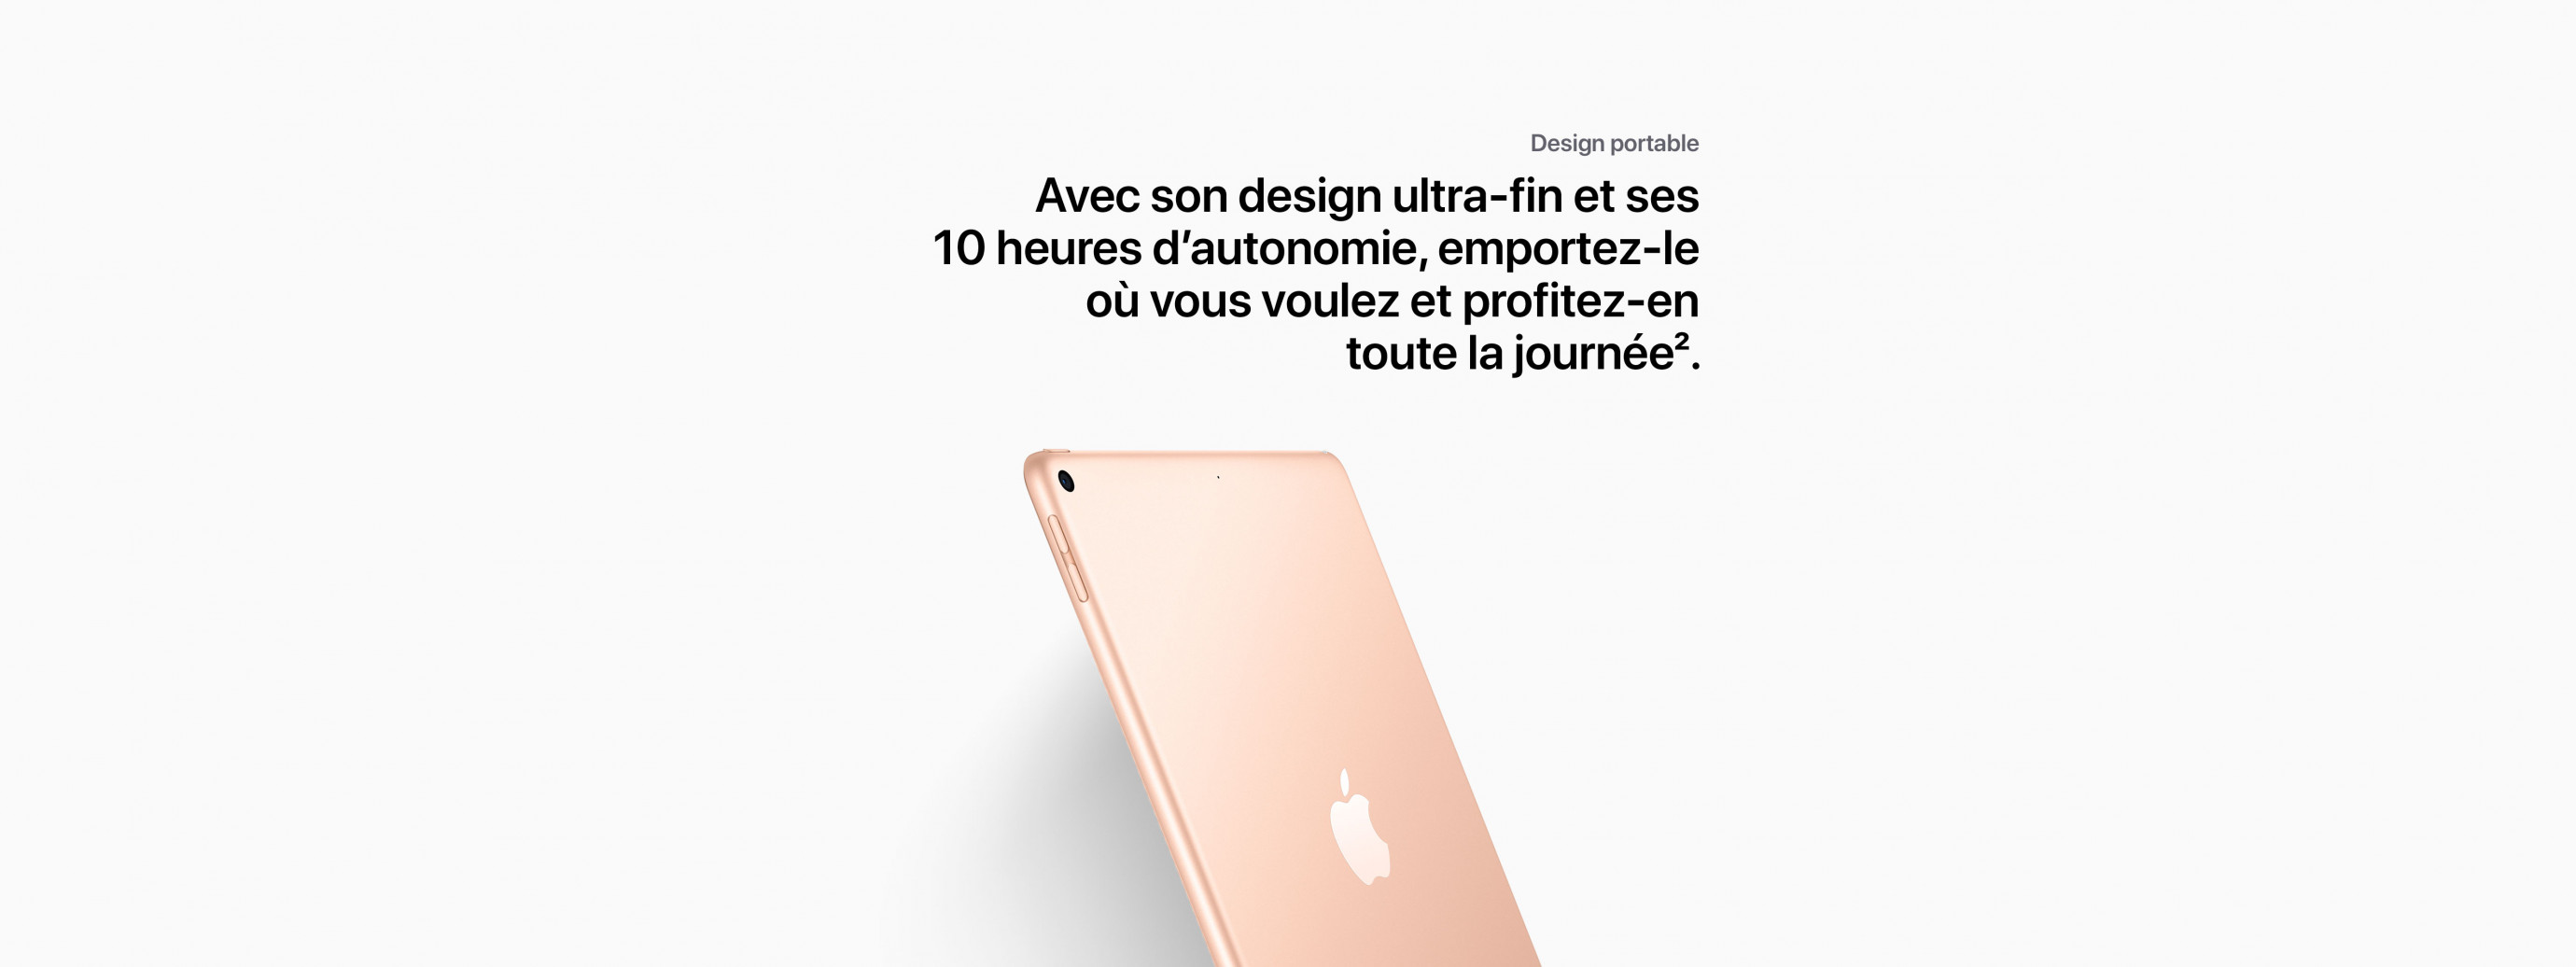 Productpage---iPad-Air-2019-fr_07.jpg